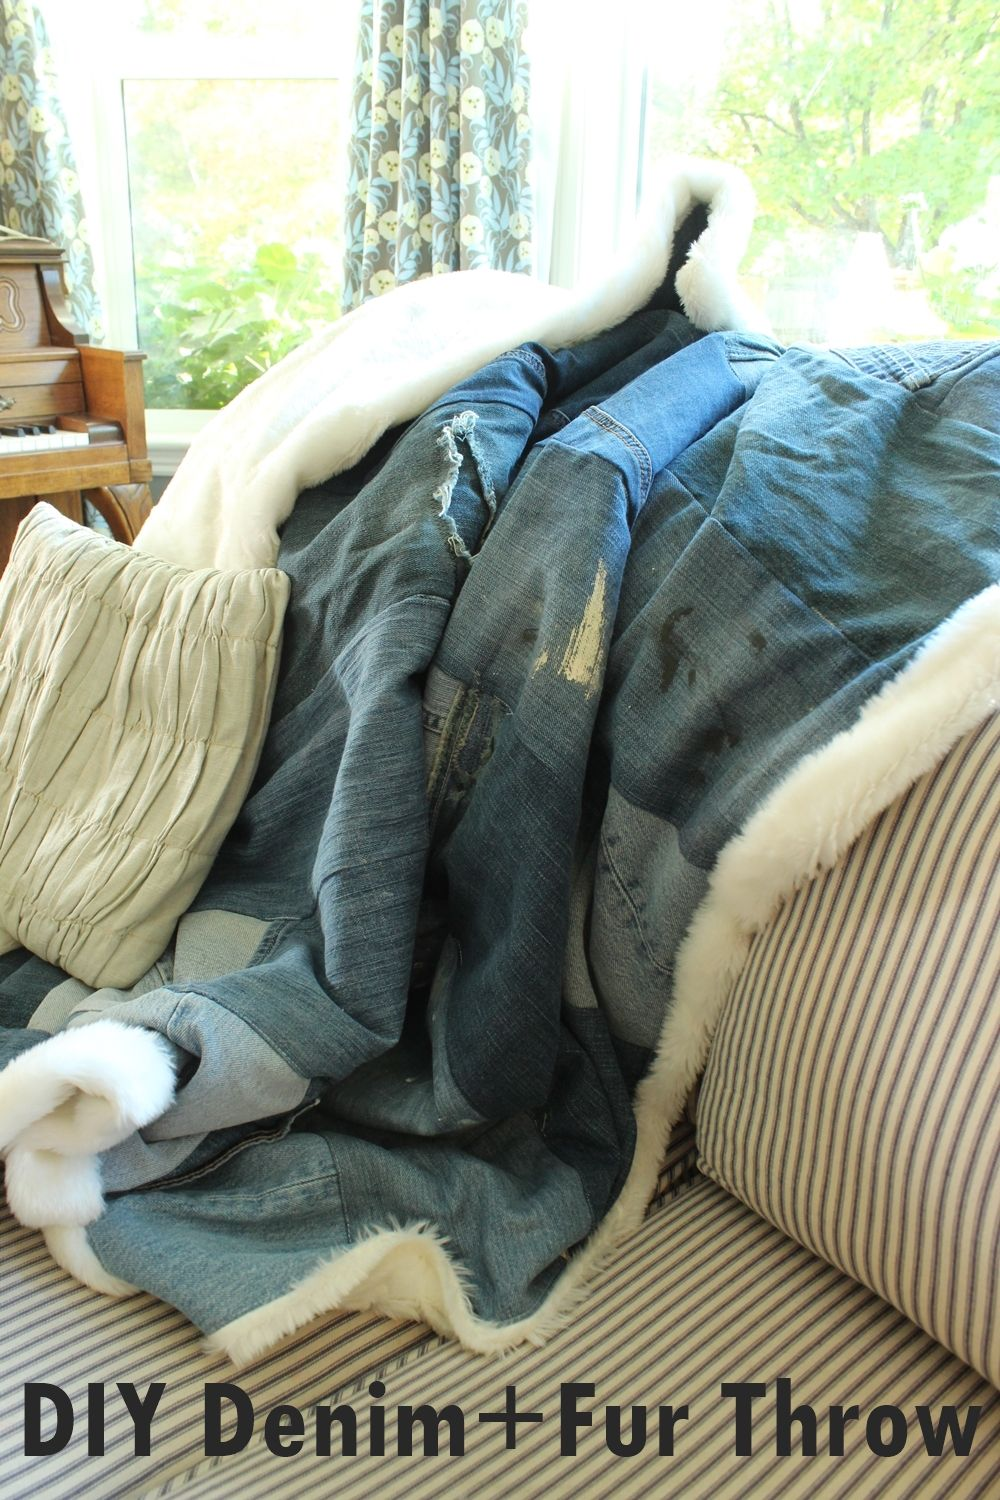 DIY Denim Fur Throw Craft